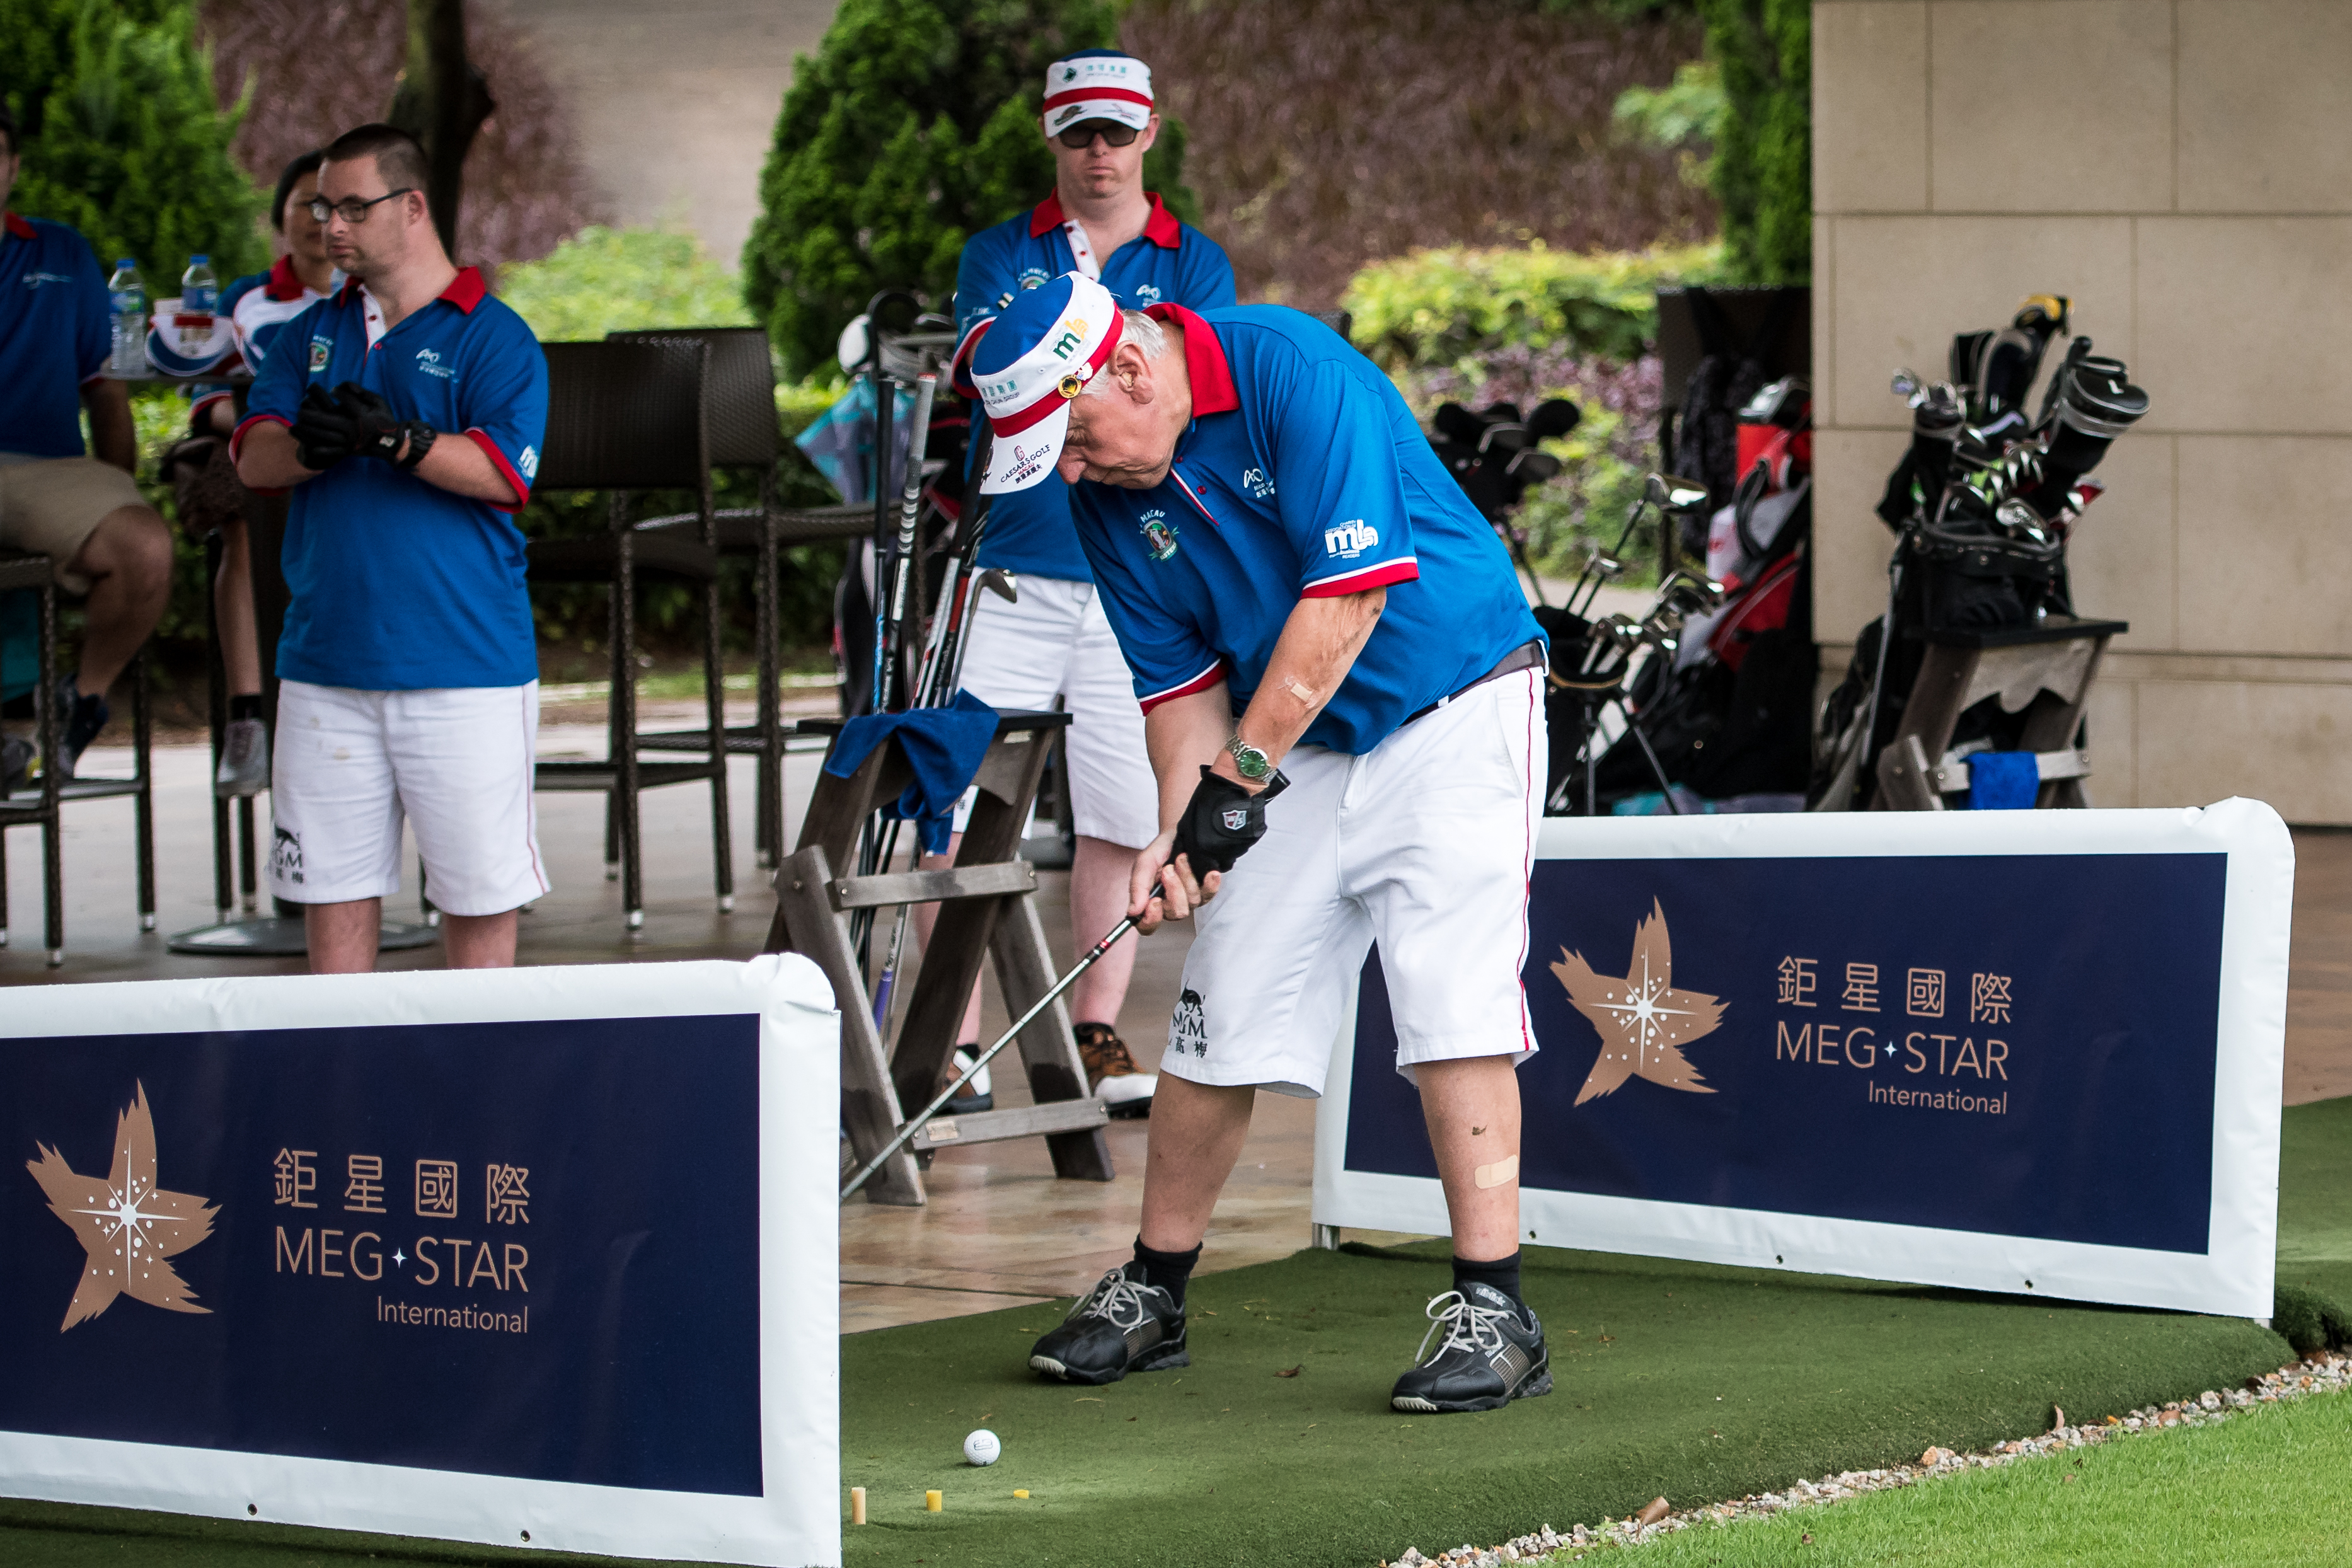 Level 2 Best Ball Gaming Format Was Secured By Macaus Homebred Special Olympics Golf Team Of Tam Chan Kit And Cheong Mui Who Are Solely Funded